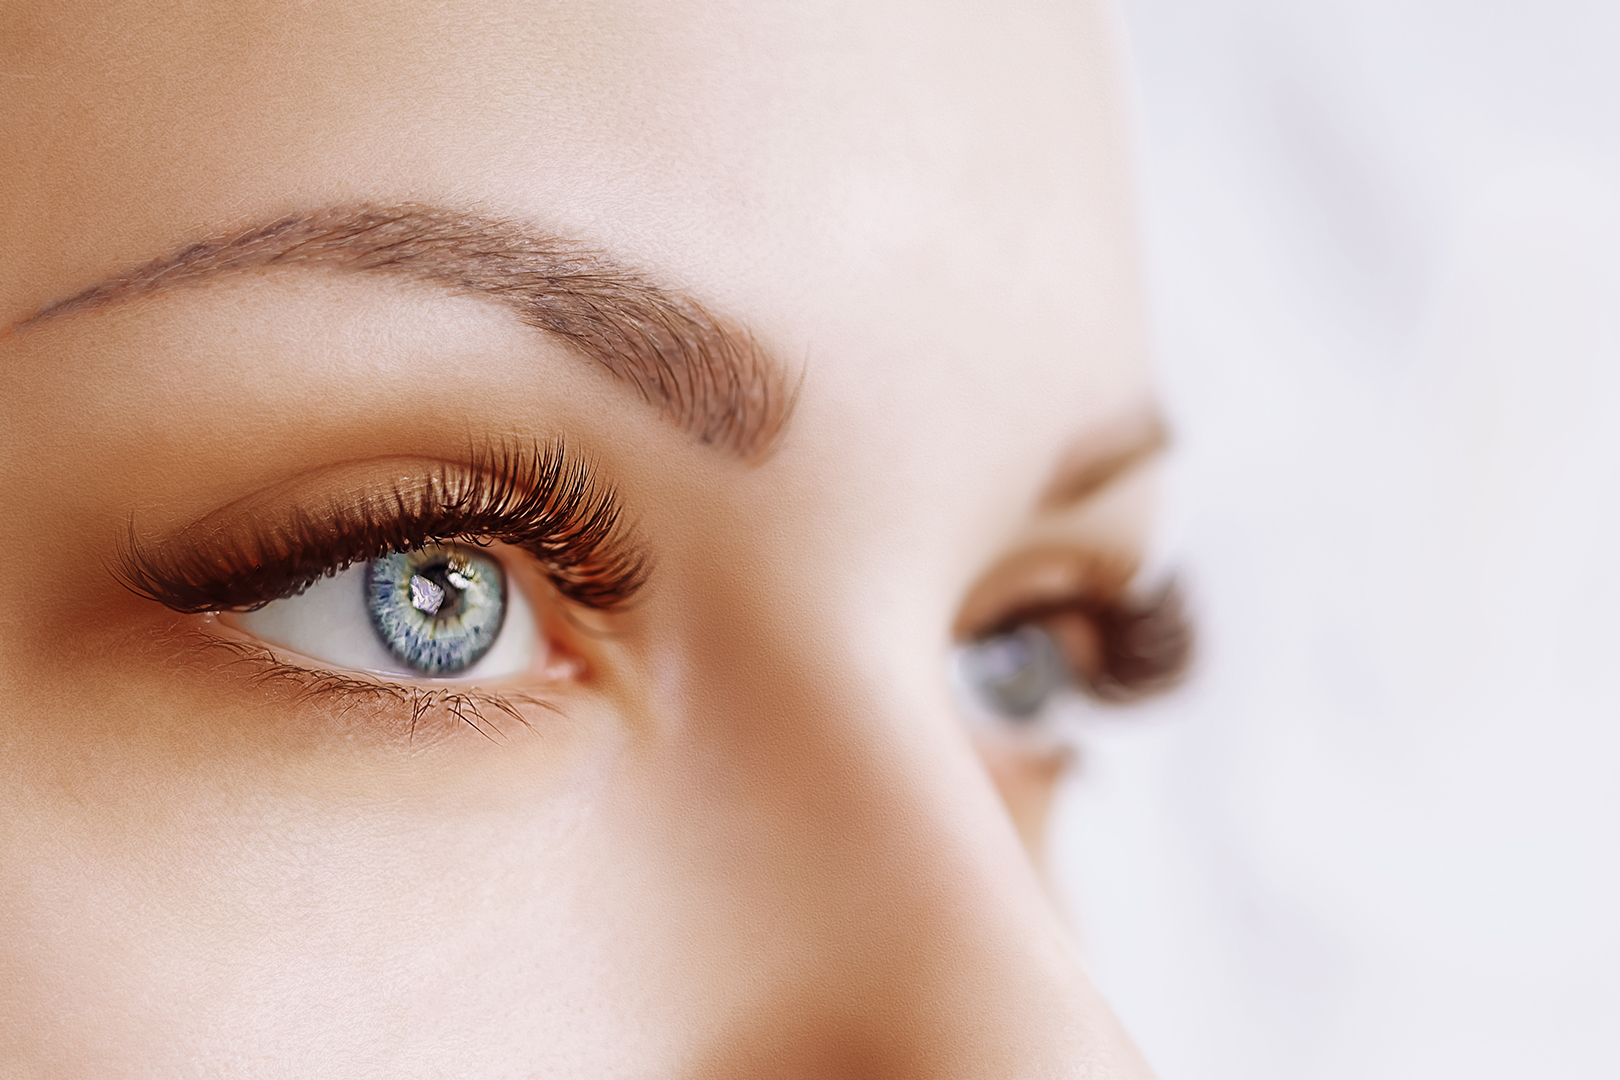 0b6f96250bd DEFINED BROWS AND DRAMATIC LASHES ARE HIGHLY SOUGHT AFTER BY EVERYONE!  Using premium wax